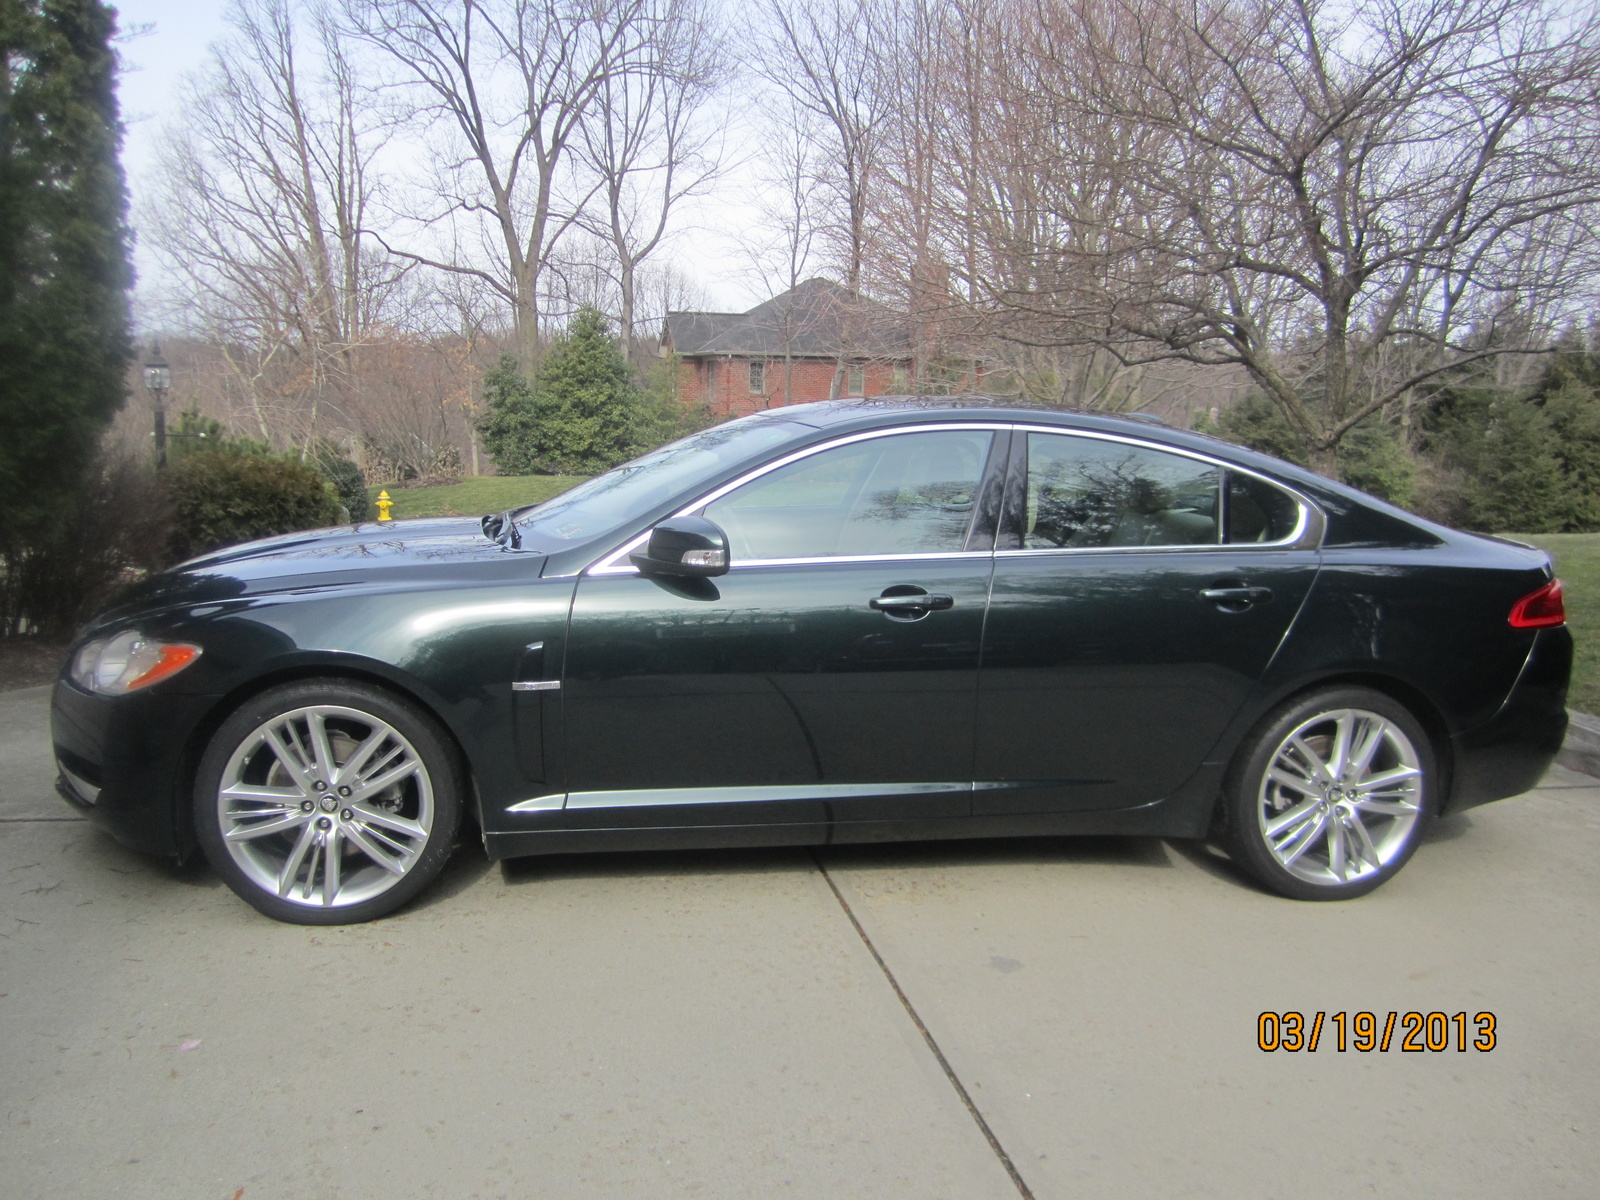 jaguar xf 2009 - photo #36